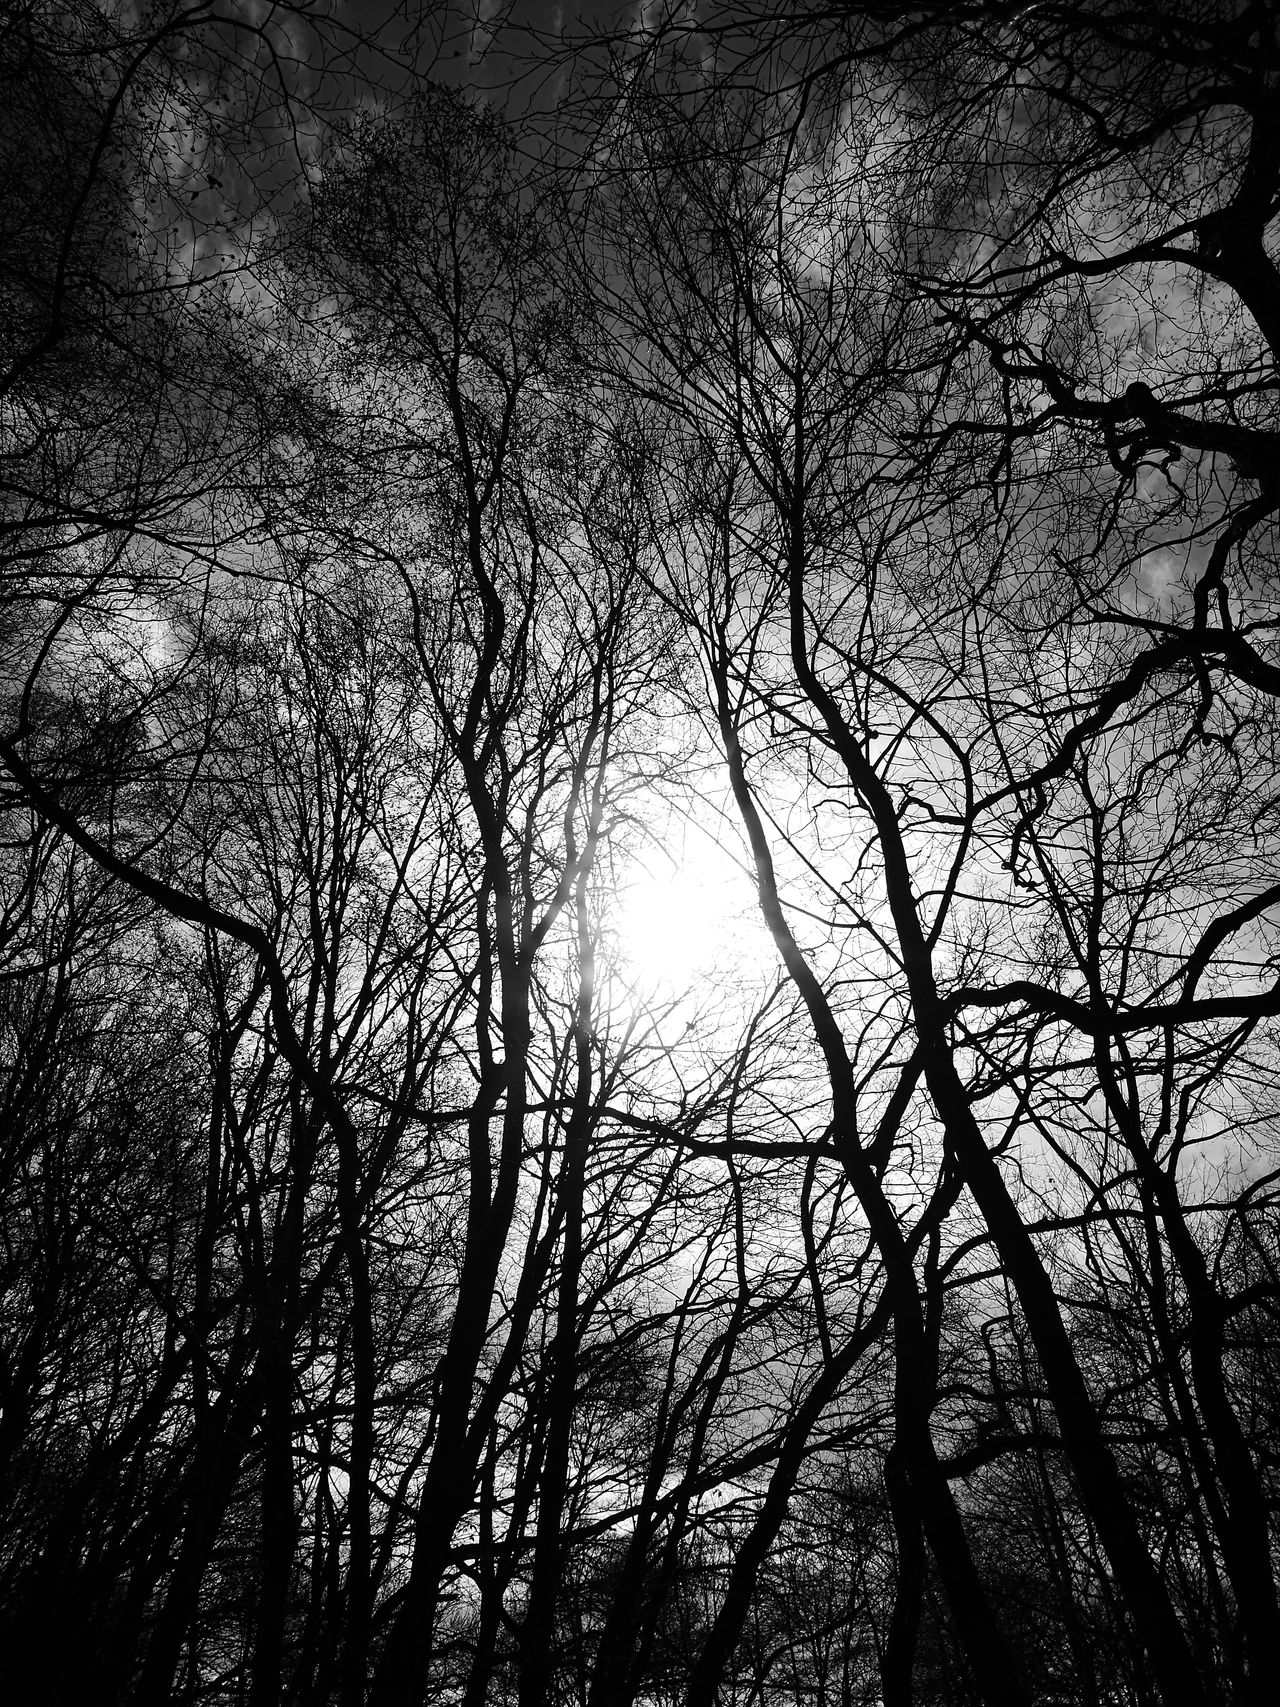 Low Angle View From My Point Of View Check This Out Tranquility Exceptional Photographs Beauty In Nature Nature No People Full Frame EyeEm Gallery Taking Photos Black & White Outdoors Sky Blackandwhitephotography Monochrome Tree Day EyeEm Best Shots Sun_collection